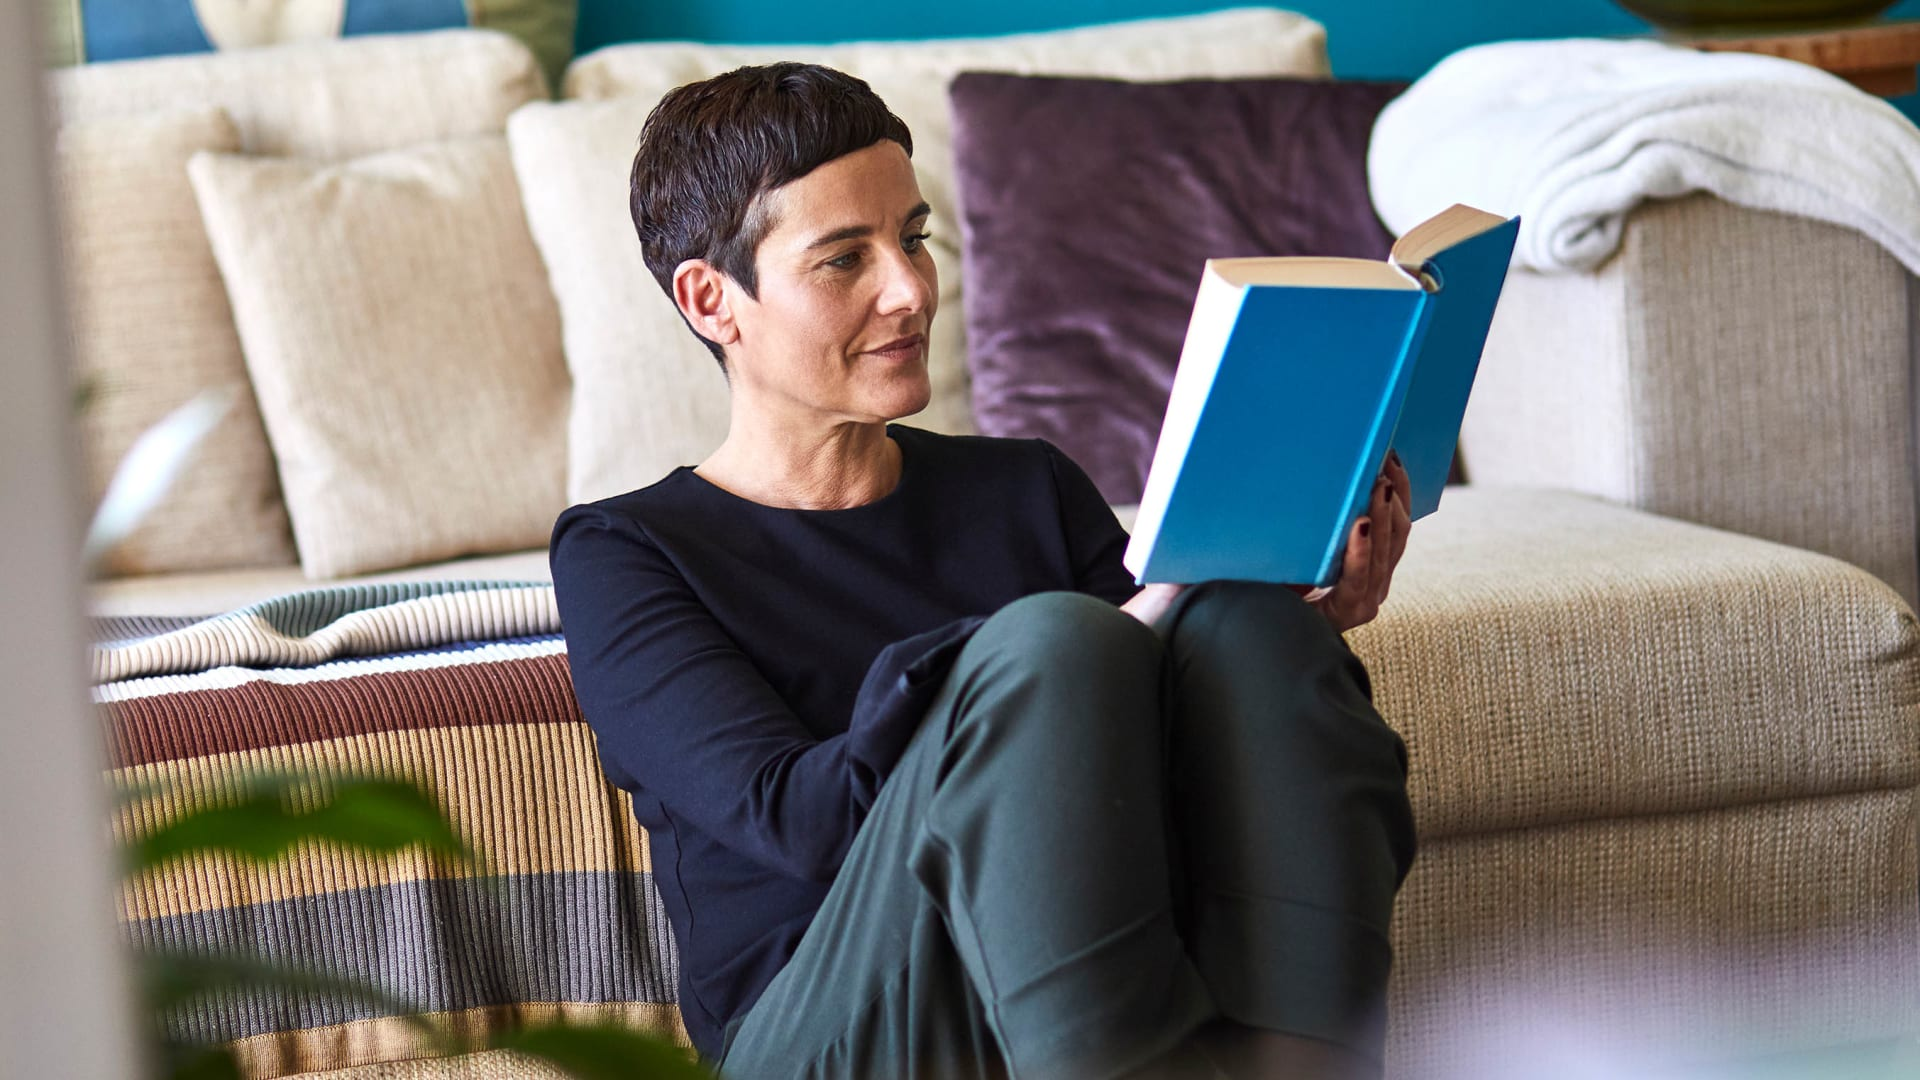 As an Entrepreneur, Think You Have No Time to Read Books? Think Again